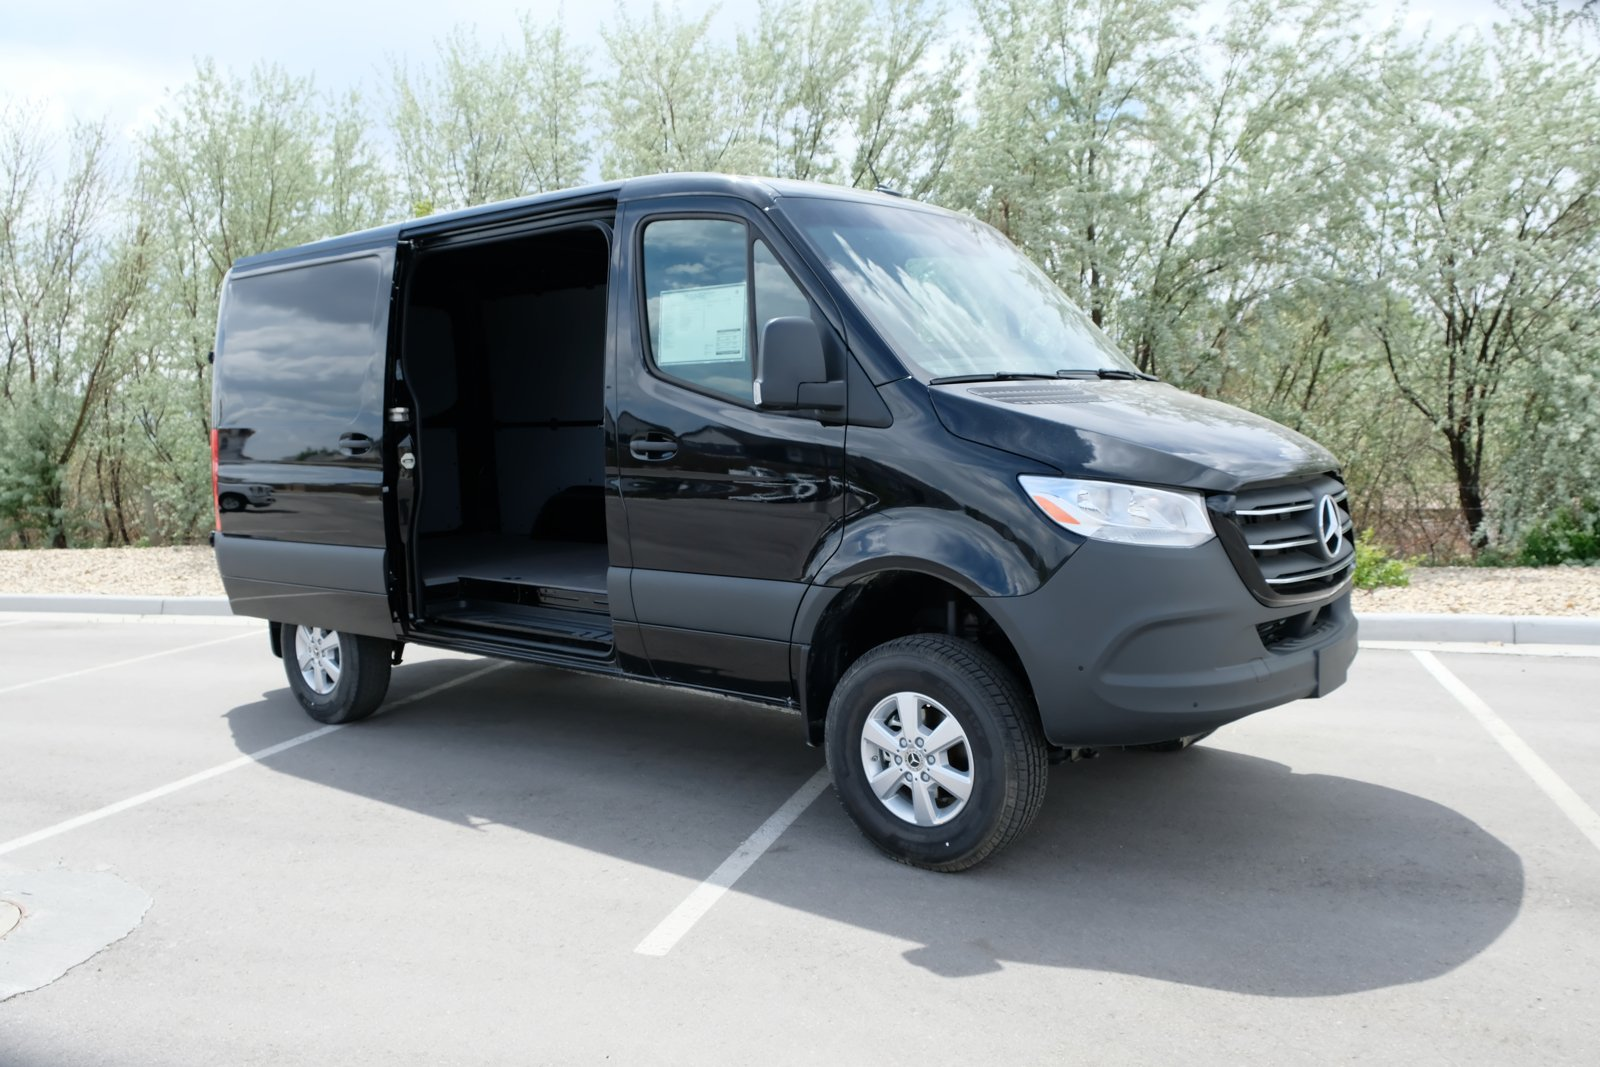 New 2020 Mercedes-Benz Sprinter Full-size Cargo Vans 4X4